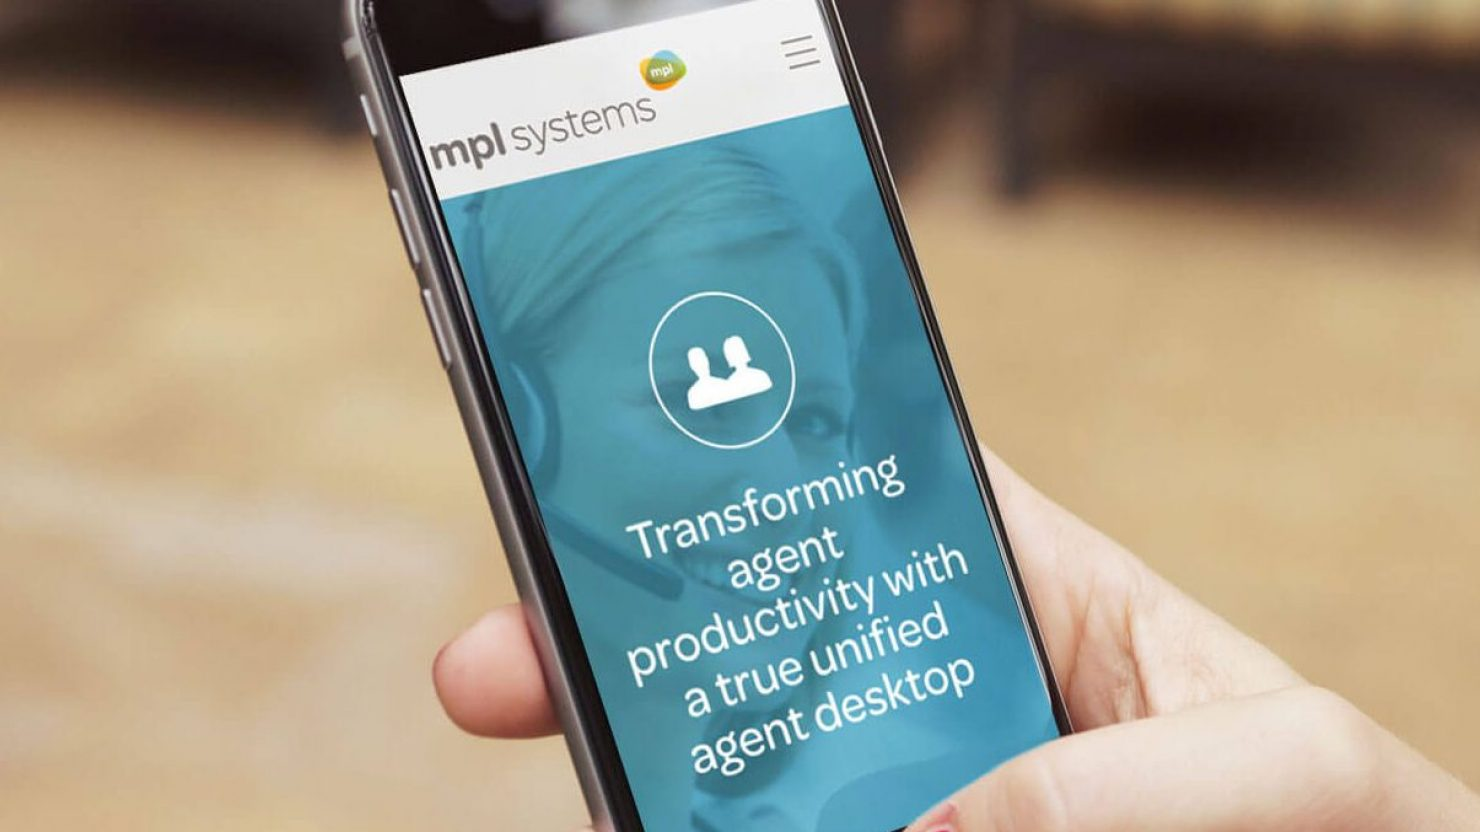 iPhone showing web design and branding for MPL Systems mobile responsive slider navigation